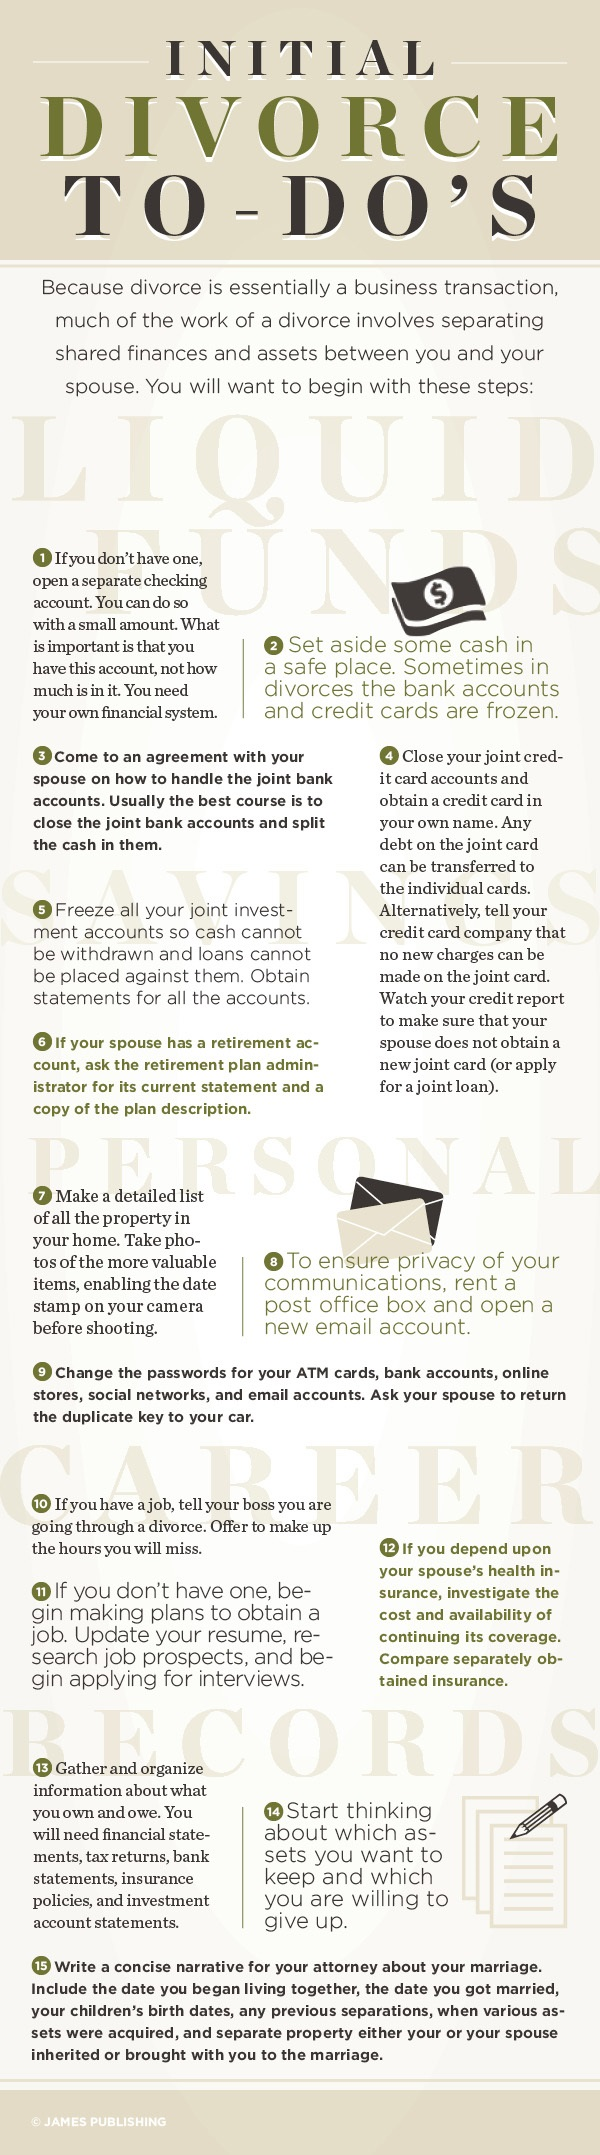 Austin divorce attorney - Initial Divorce To-Do's Infographic